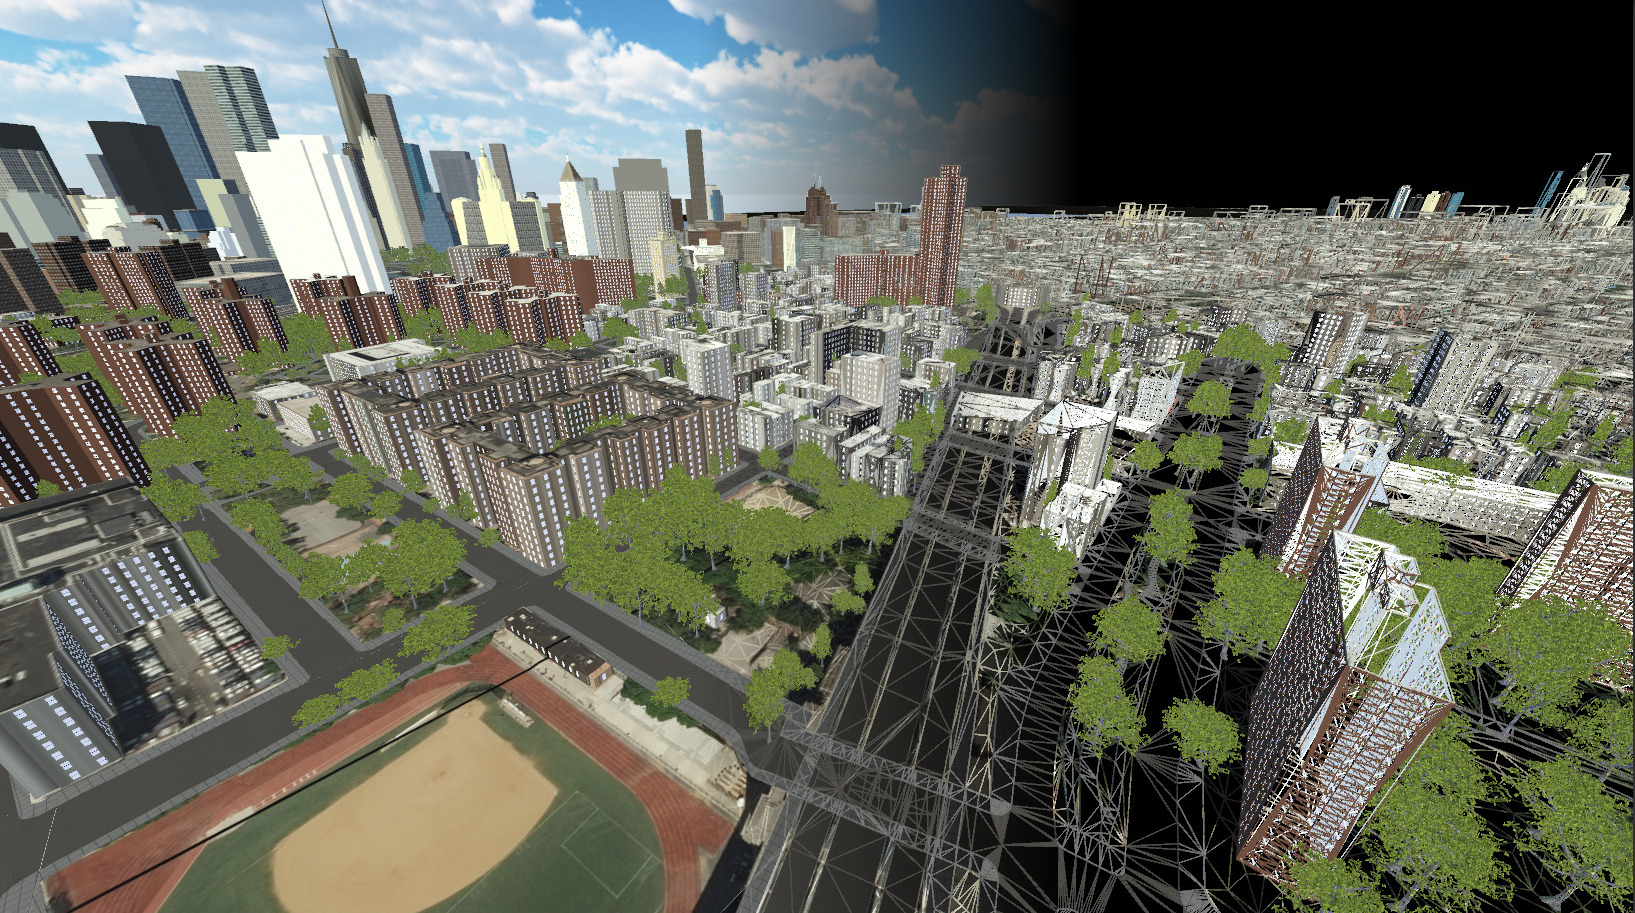 Geopipe's city models, shown with solid and wireframe rendering, demonstrating optimizations for fast performance and high visual quality